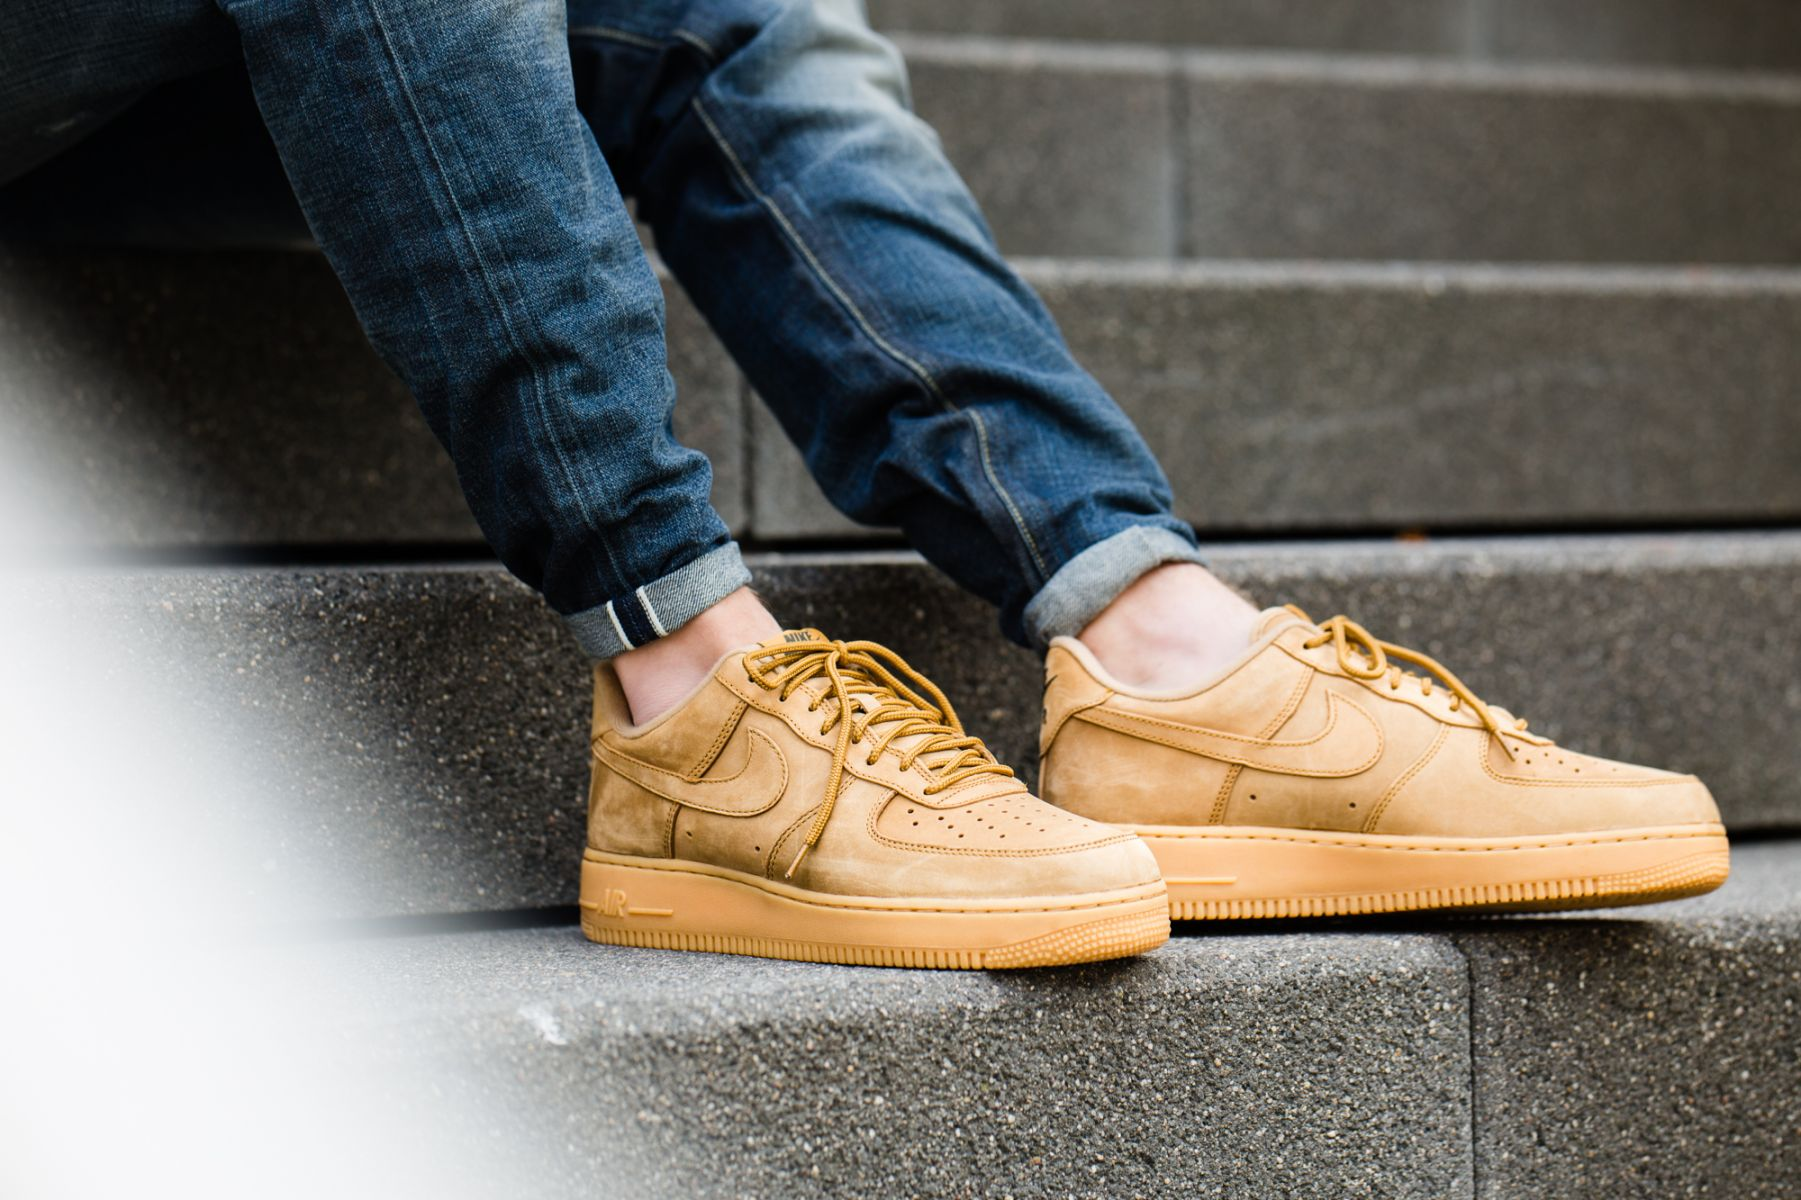 timeless design f47f5 4f981 Look For The Nike Air Force 1 Low Flax Soon • KicksOnFire.com